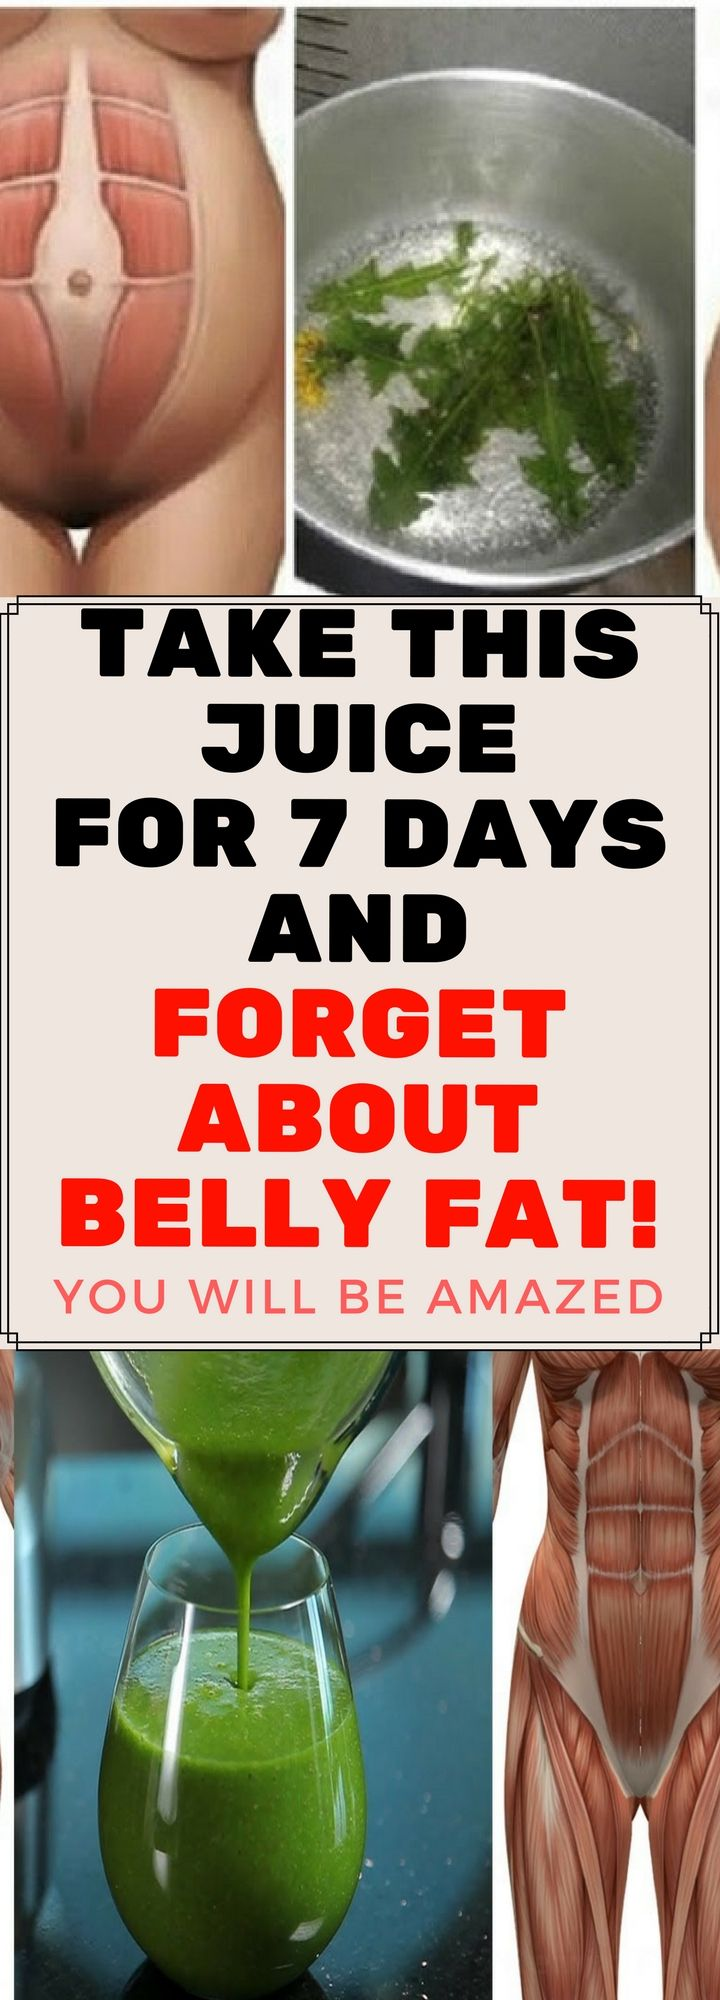 Take This Juice For 7 Days and Forget About Belly Fat..!!